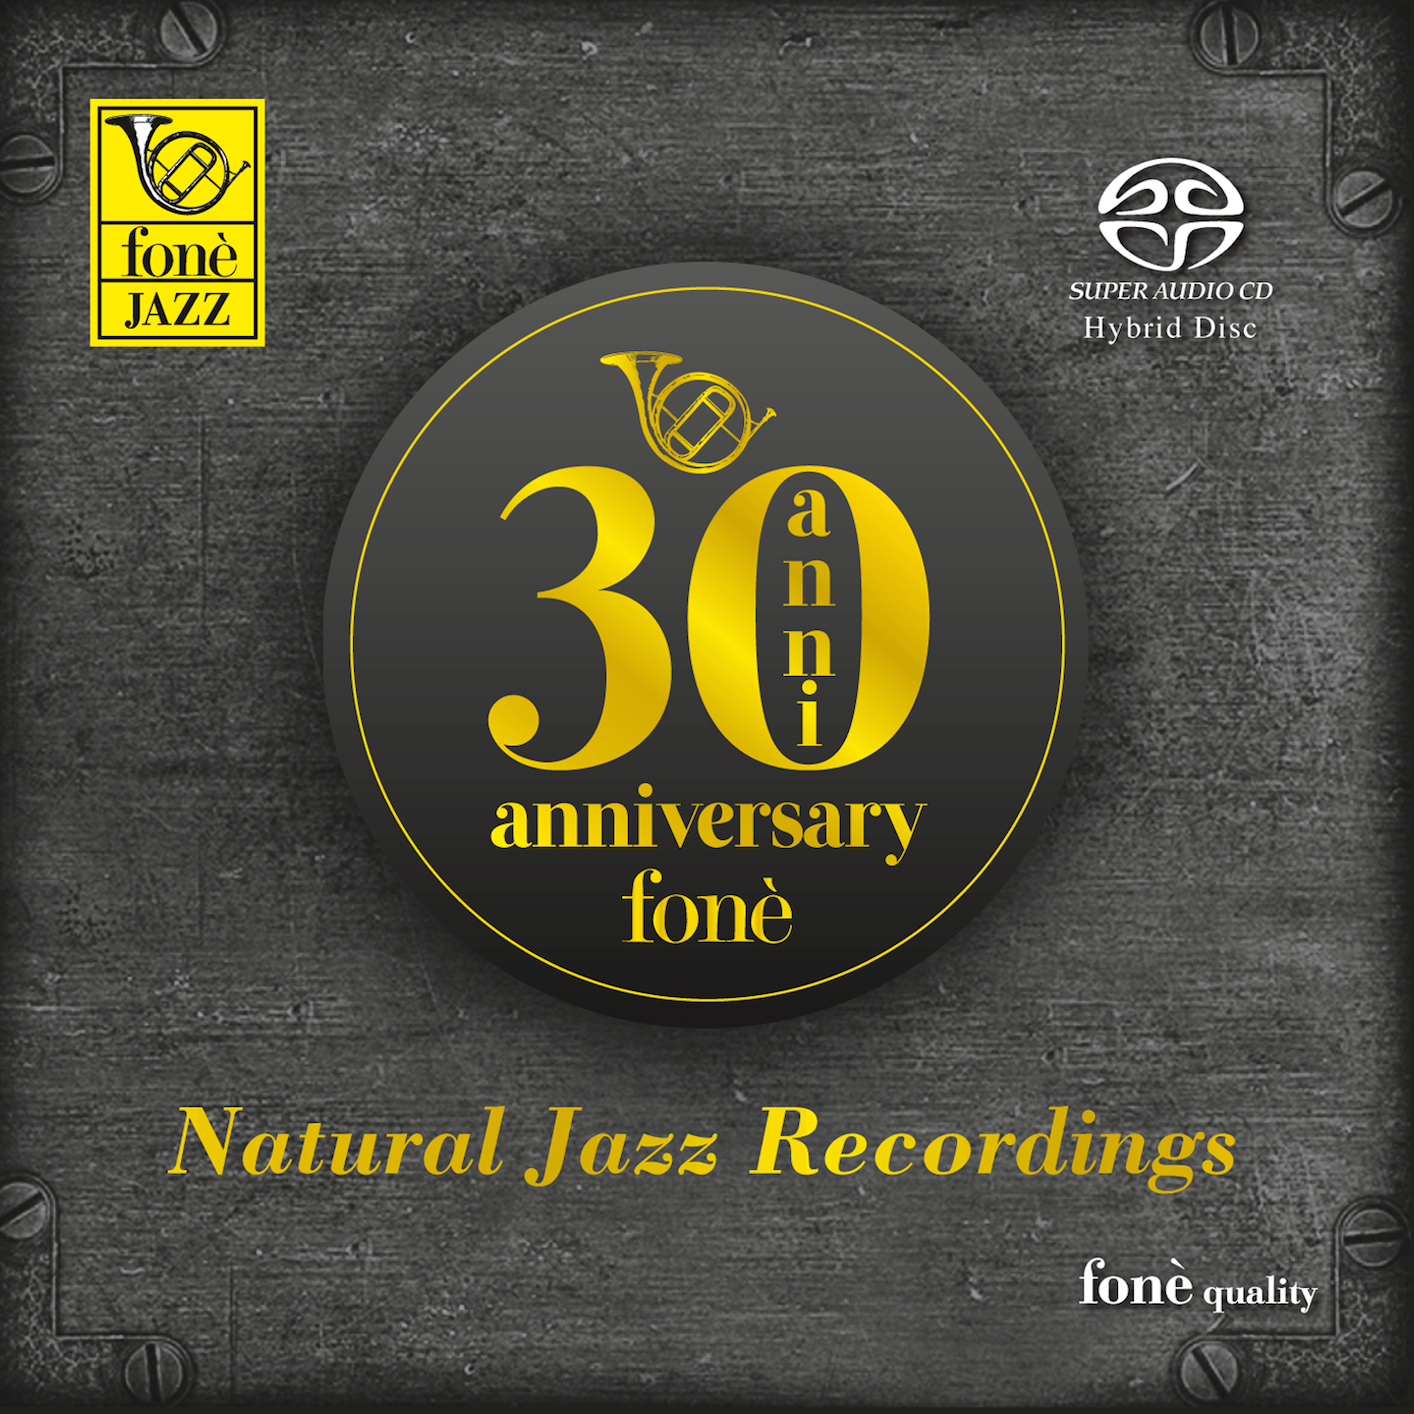 Cover fonè Natural Jazz Recordings (30th Anniversary)